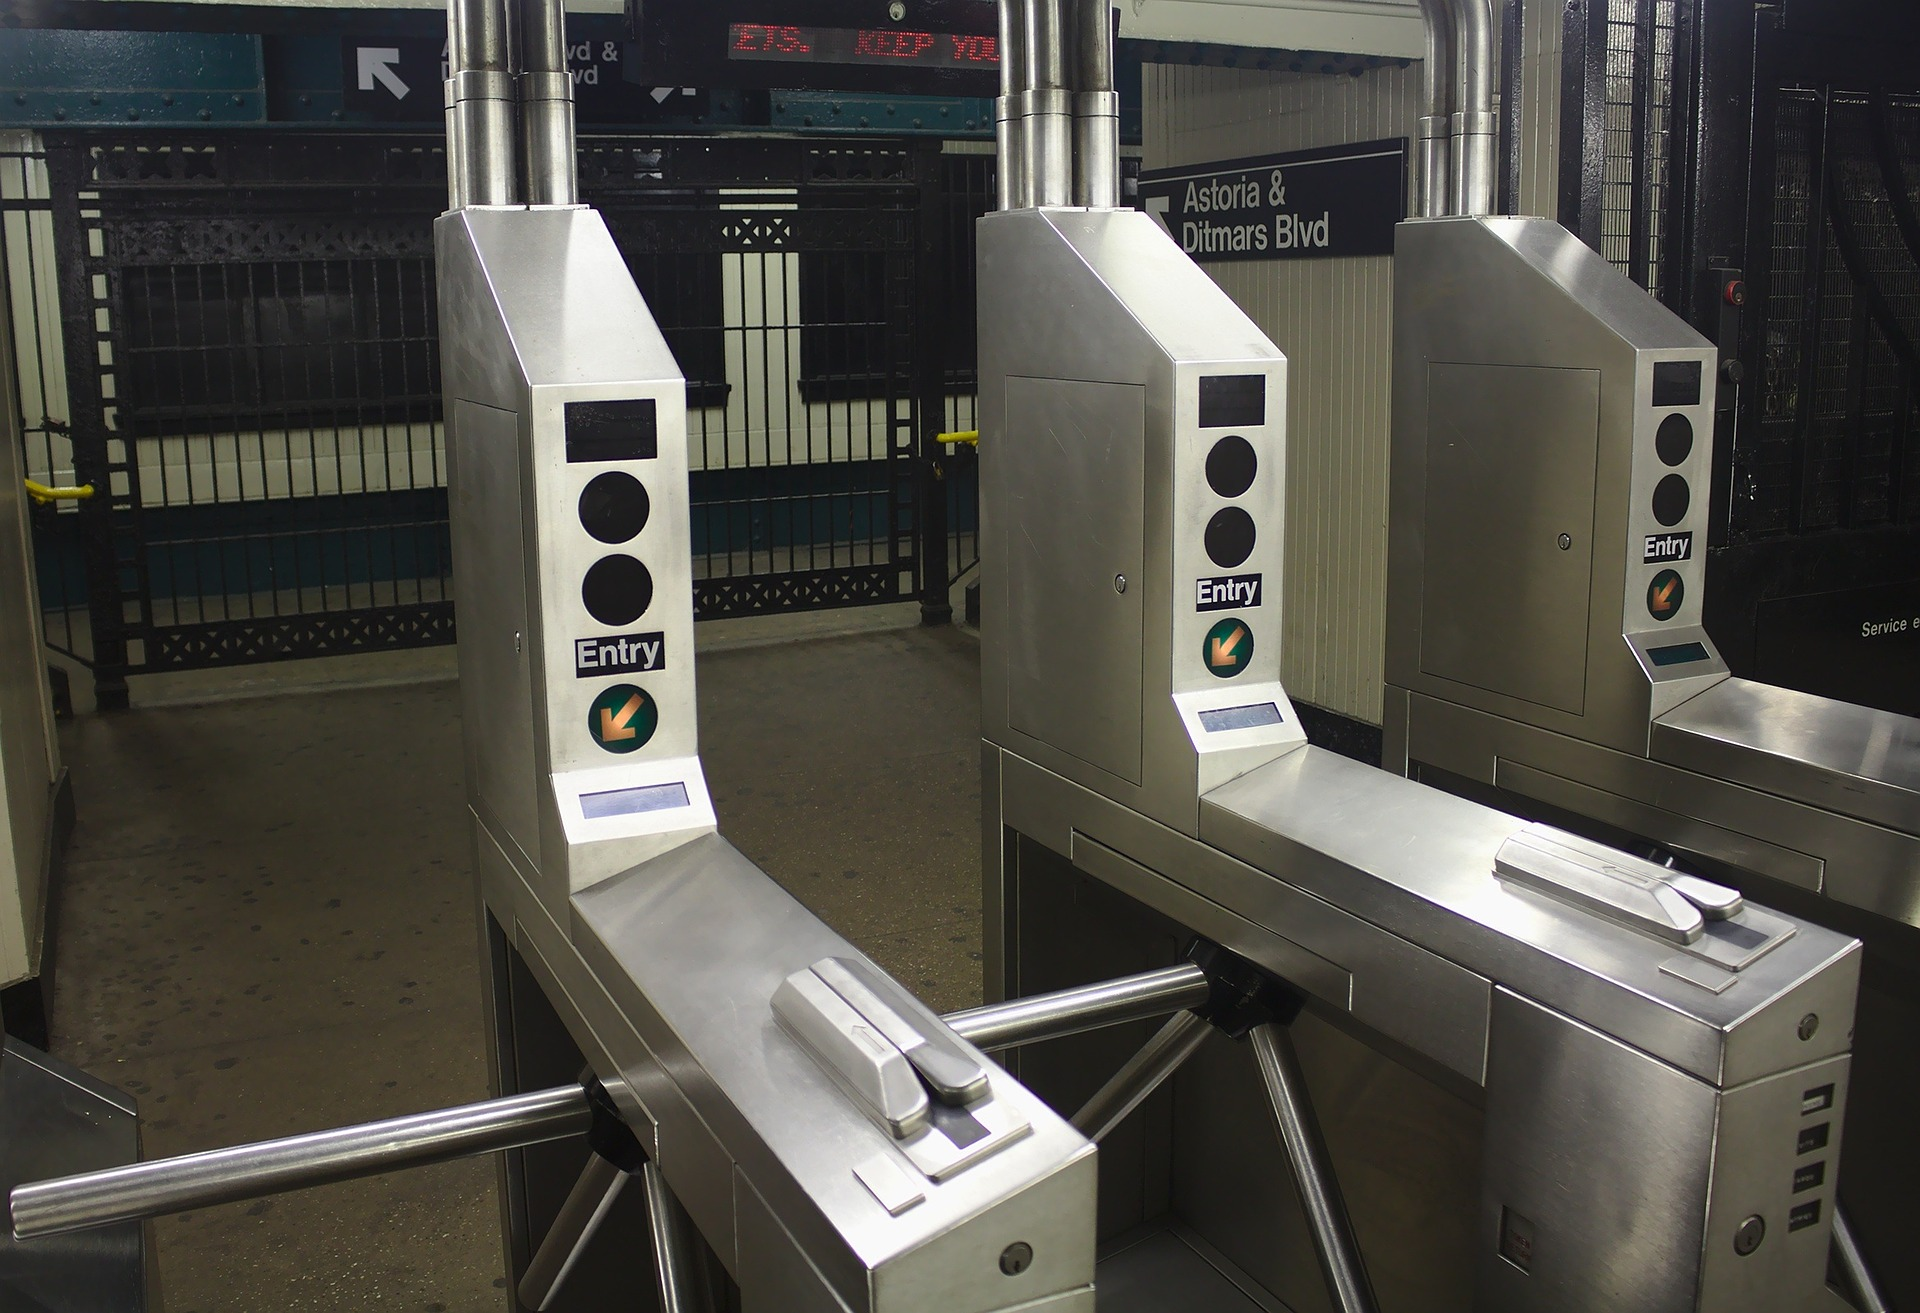 A picture of turnstiles